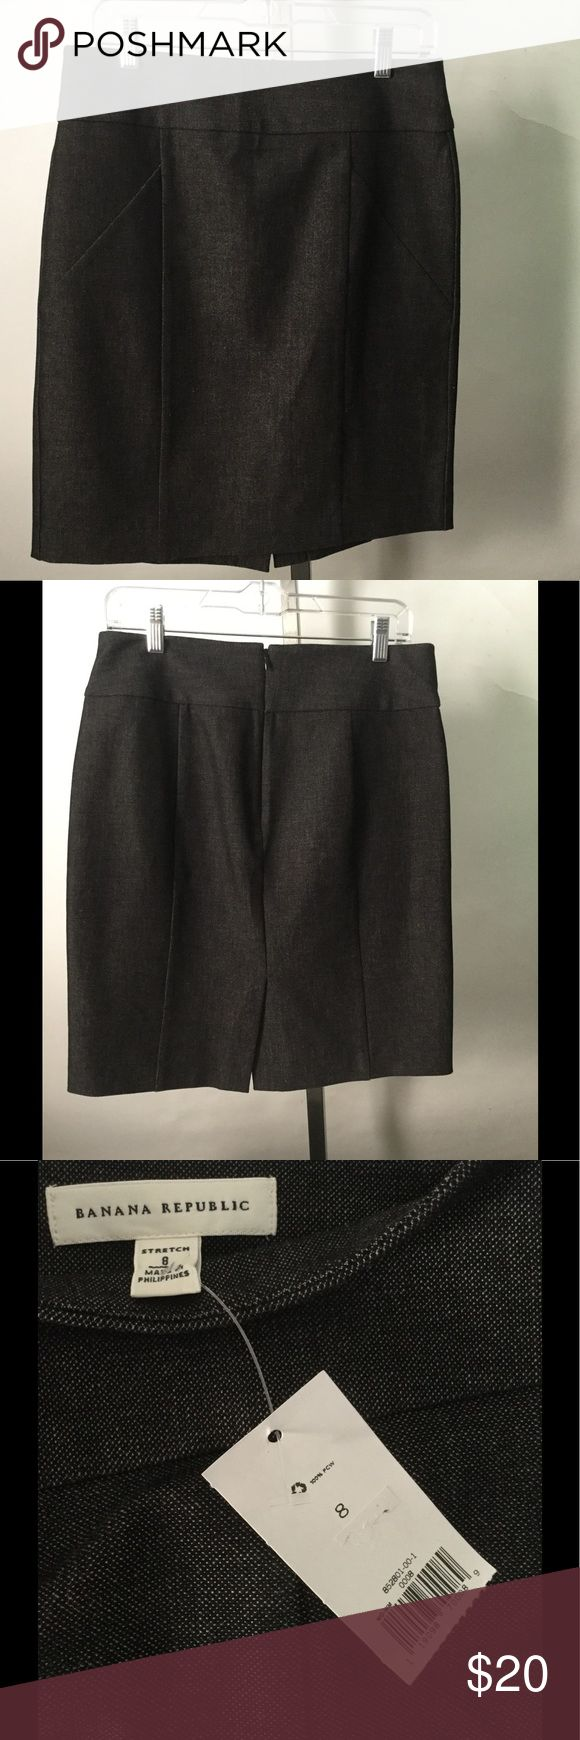 Banana Republic, Dark Jean Skirt, Size 8 Banana Republic, Dark Jean Skirt, Size 8, New Banana Republic Skirts